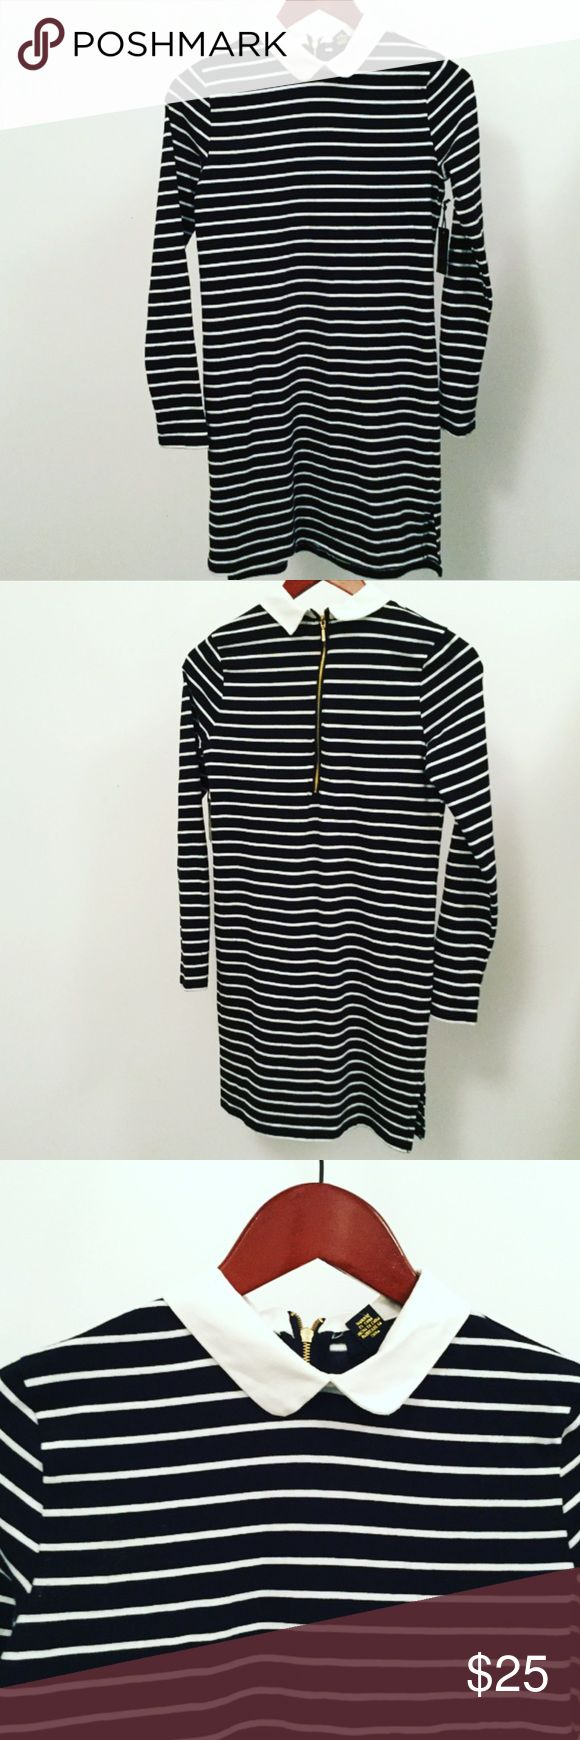 """Collard Dress🎀 Brand New with tags! SO Adorable Black and White striped stretchy Dress with White Collar. Short zip up back.  Says size small but will fit a Medium also! Not fitted like a bodycon. Will Look Amazing with a pair of black heels for a night out! Measures 31"""" Length 🎀Discount on a Bundle Dresses Midi"""